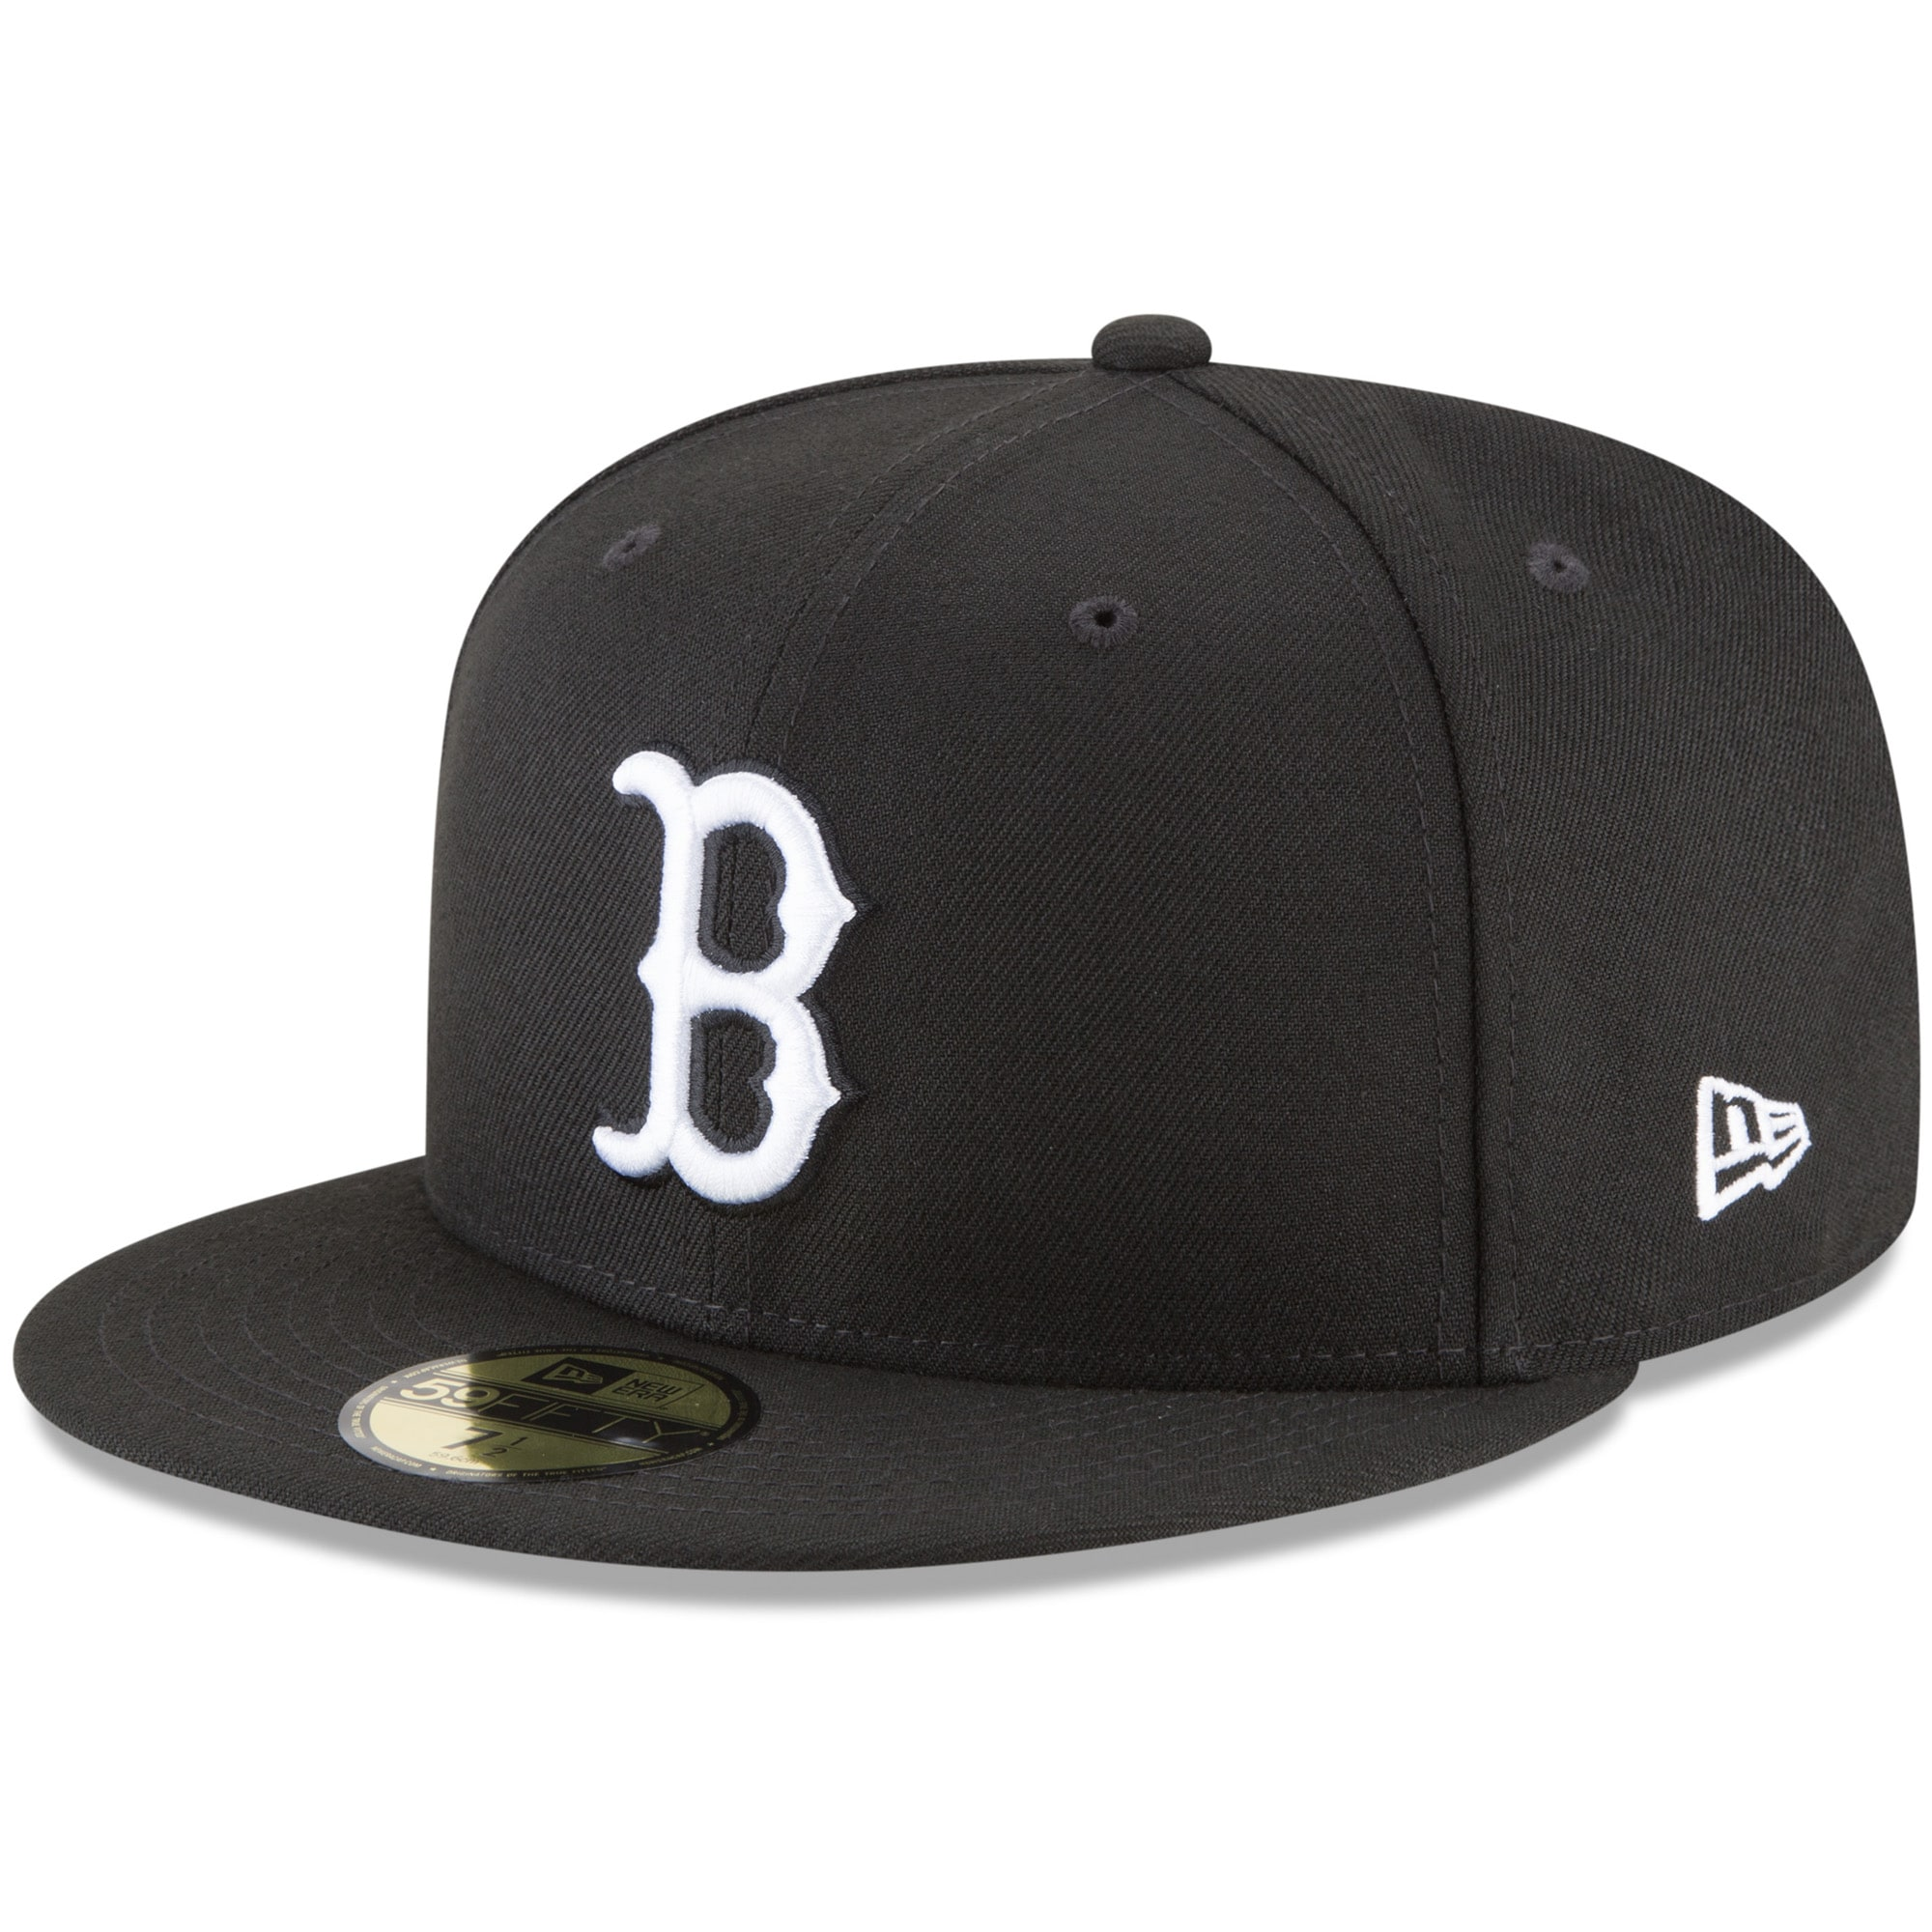 Boston Red Sox New Era 59FIFTY Fitted Hat - Black